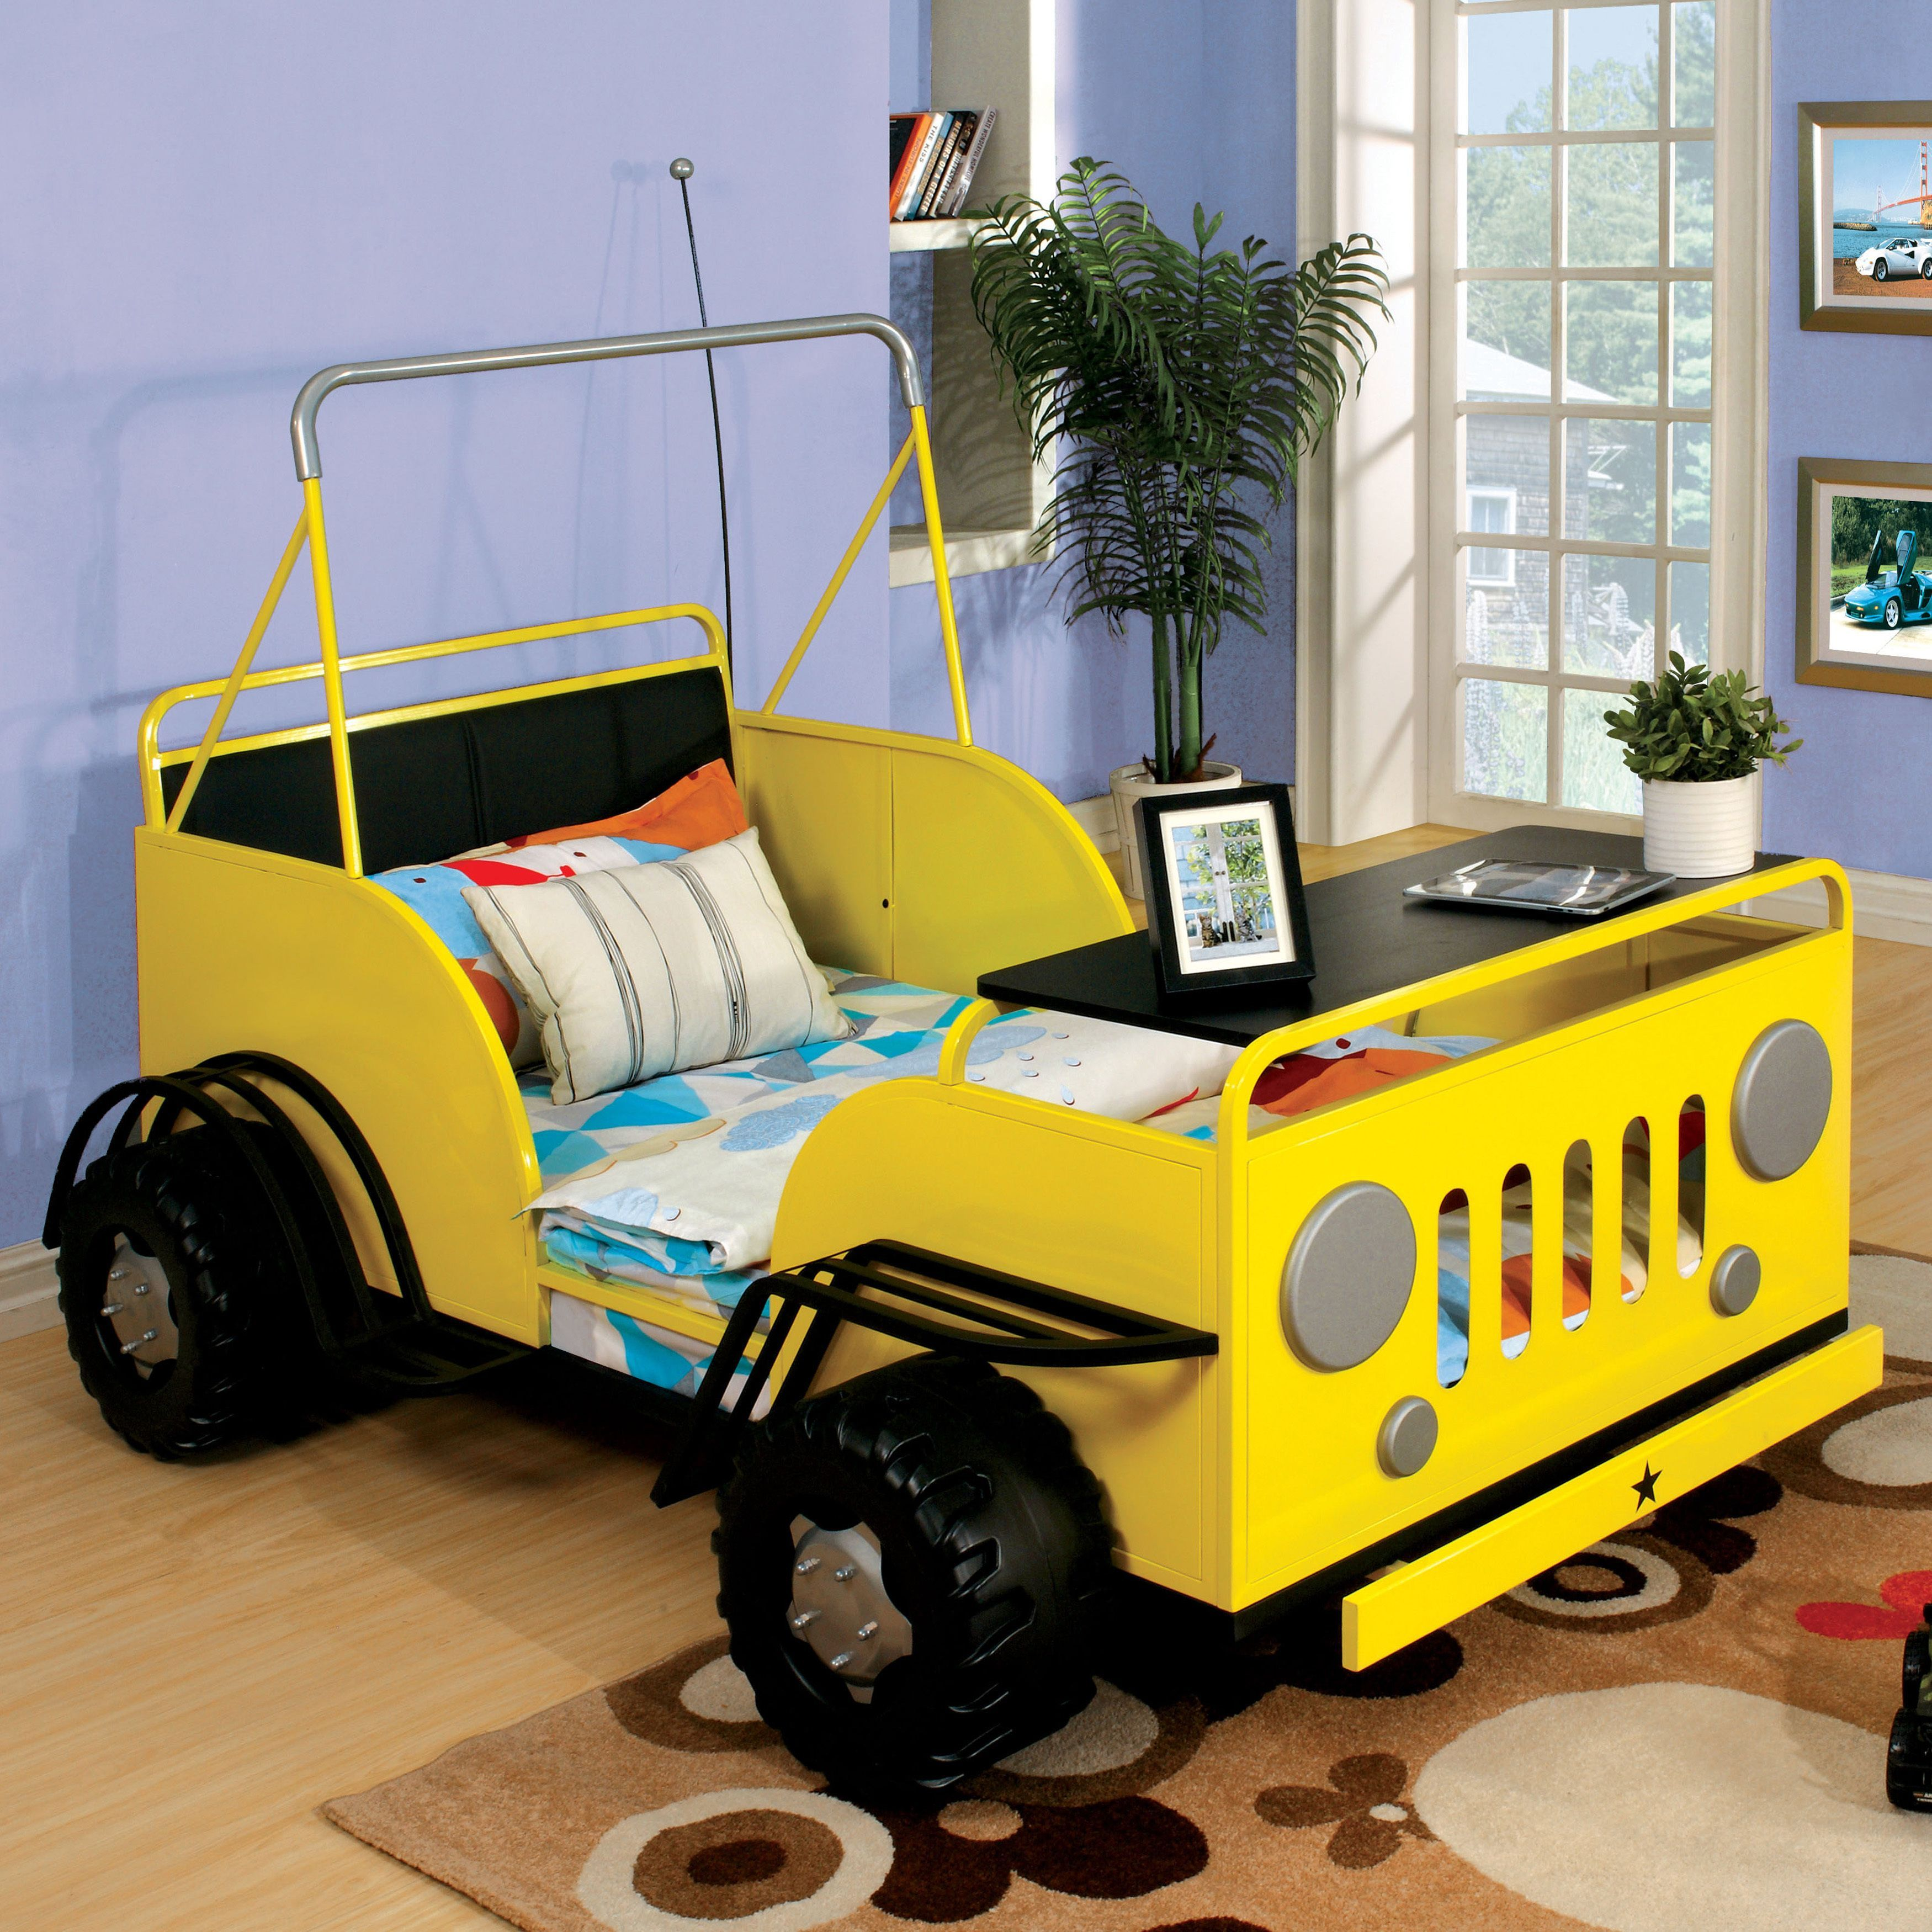 Furniture of America Goby Novelty Yellow Metal OffRoad